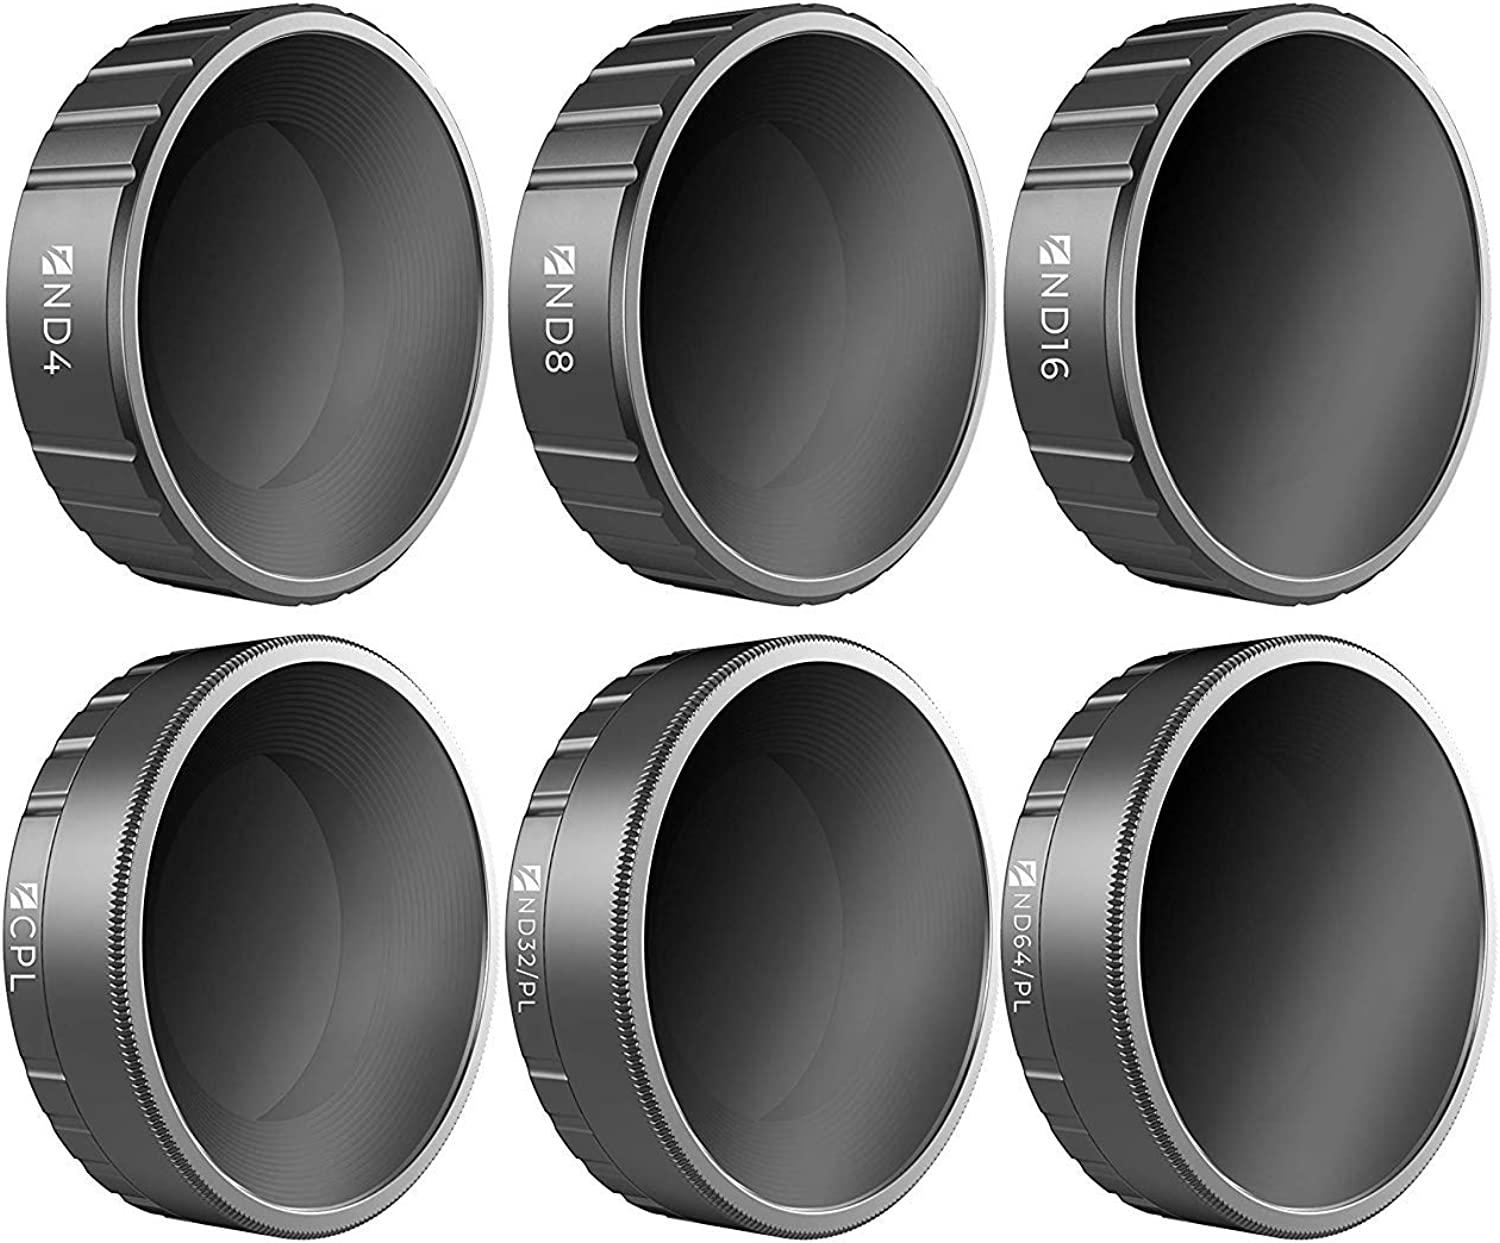 Freewell Essential E-Series 6-Pack Budget Filter Set for DJI Osmo Action Camera